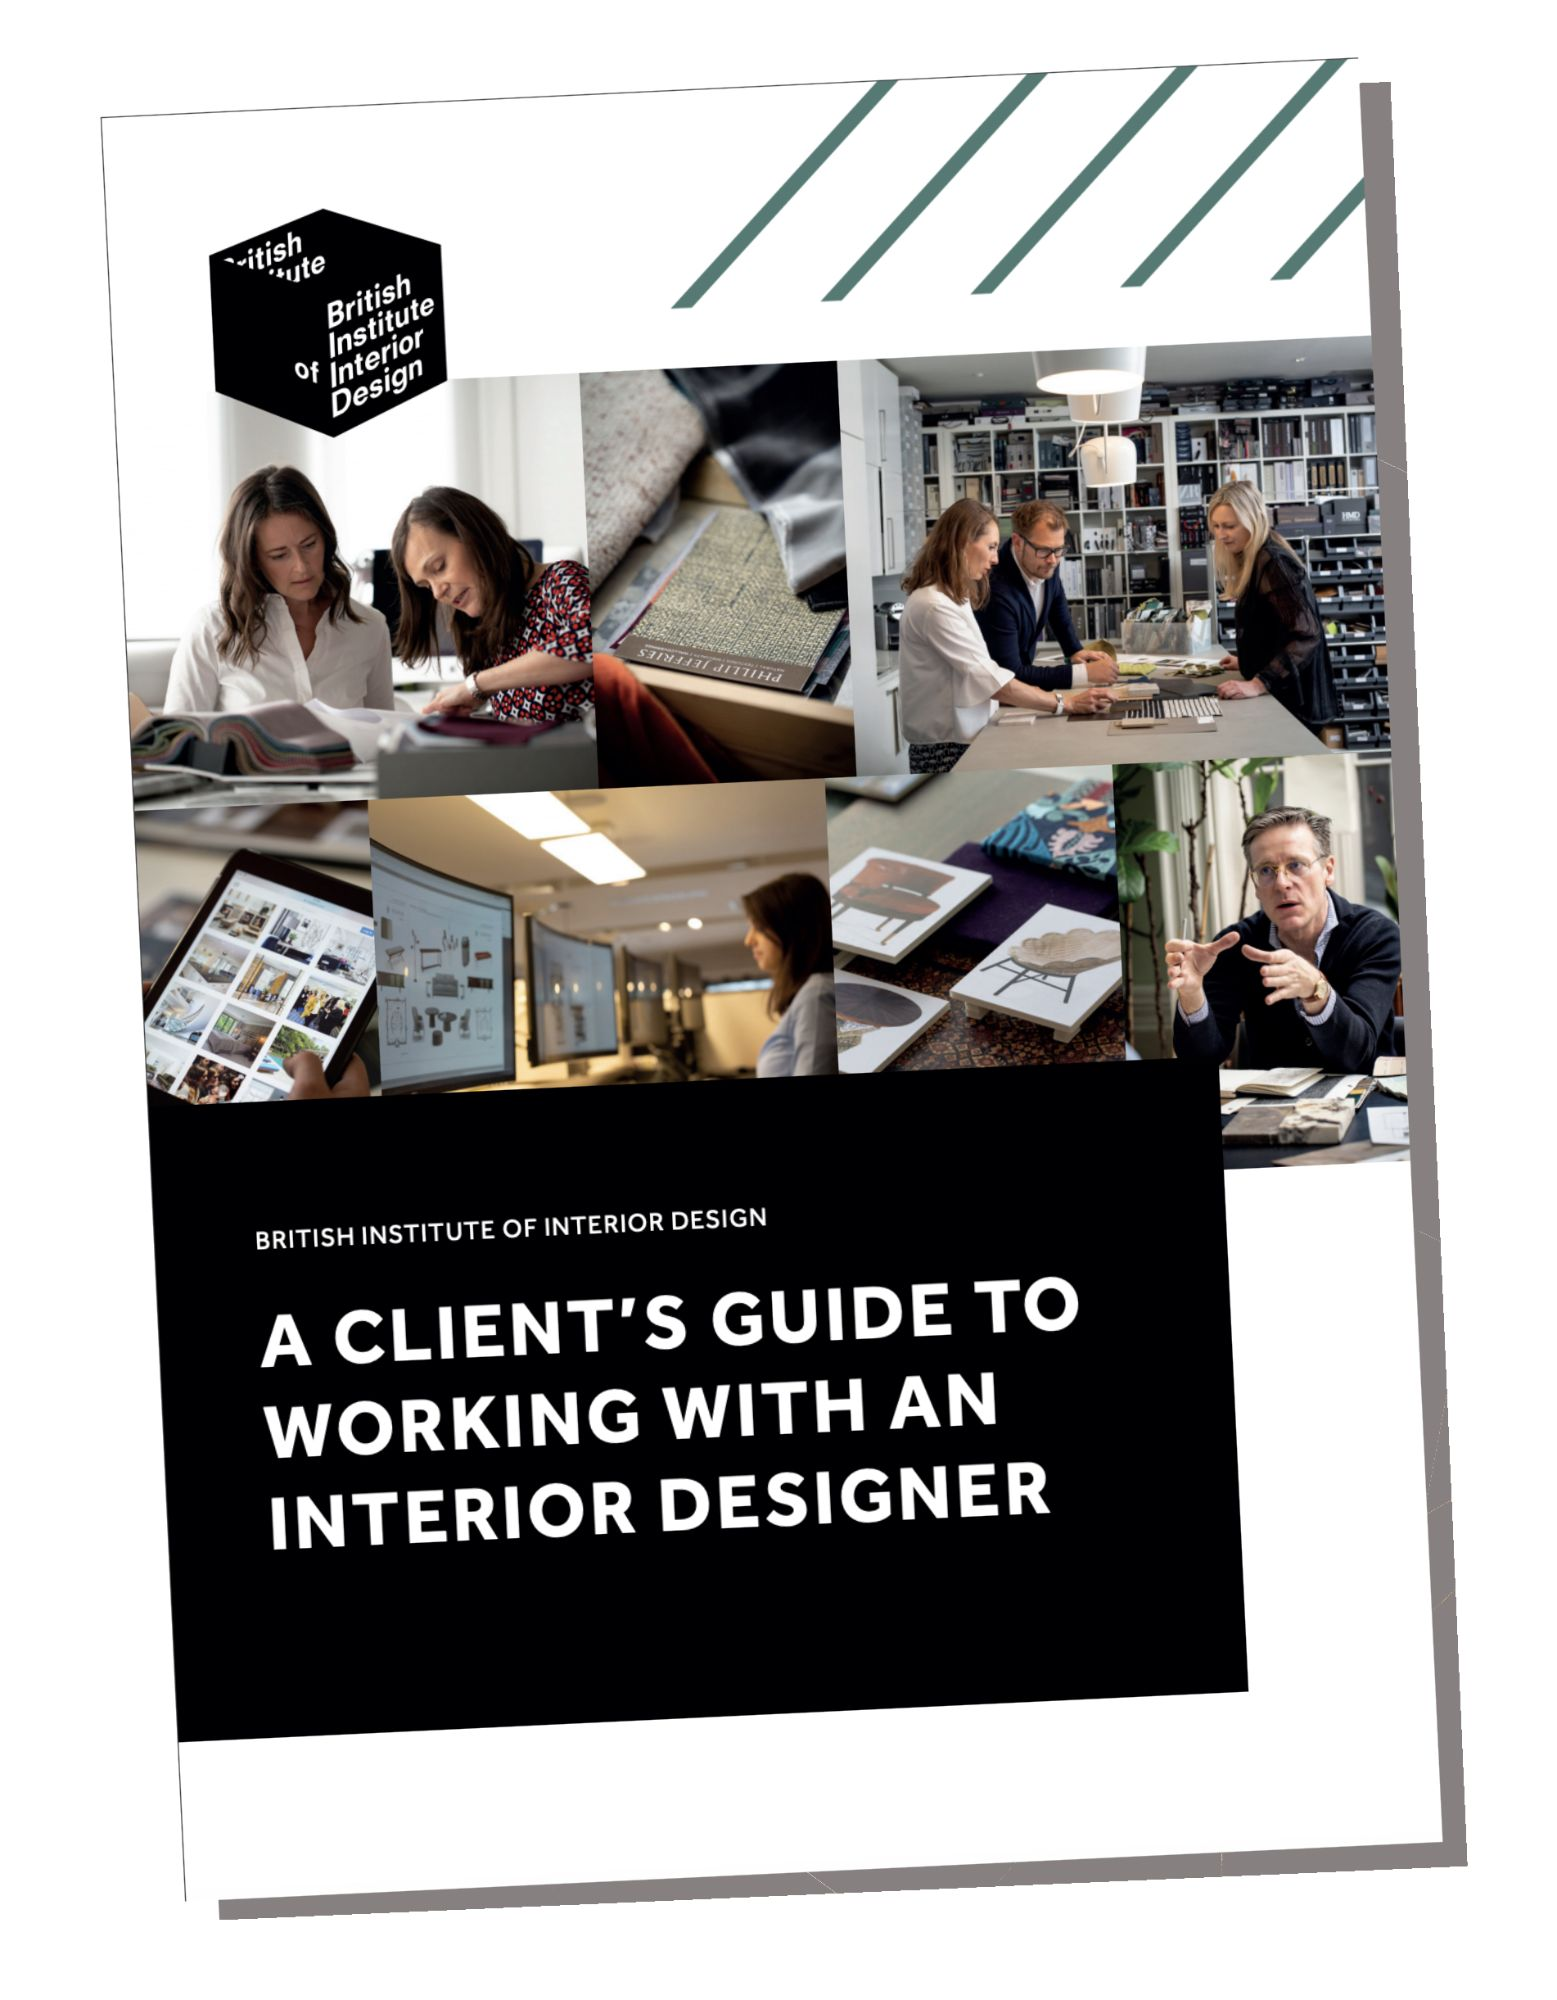 BIID guide for working with an interior designer